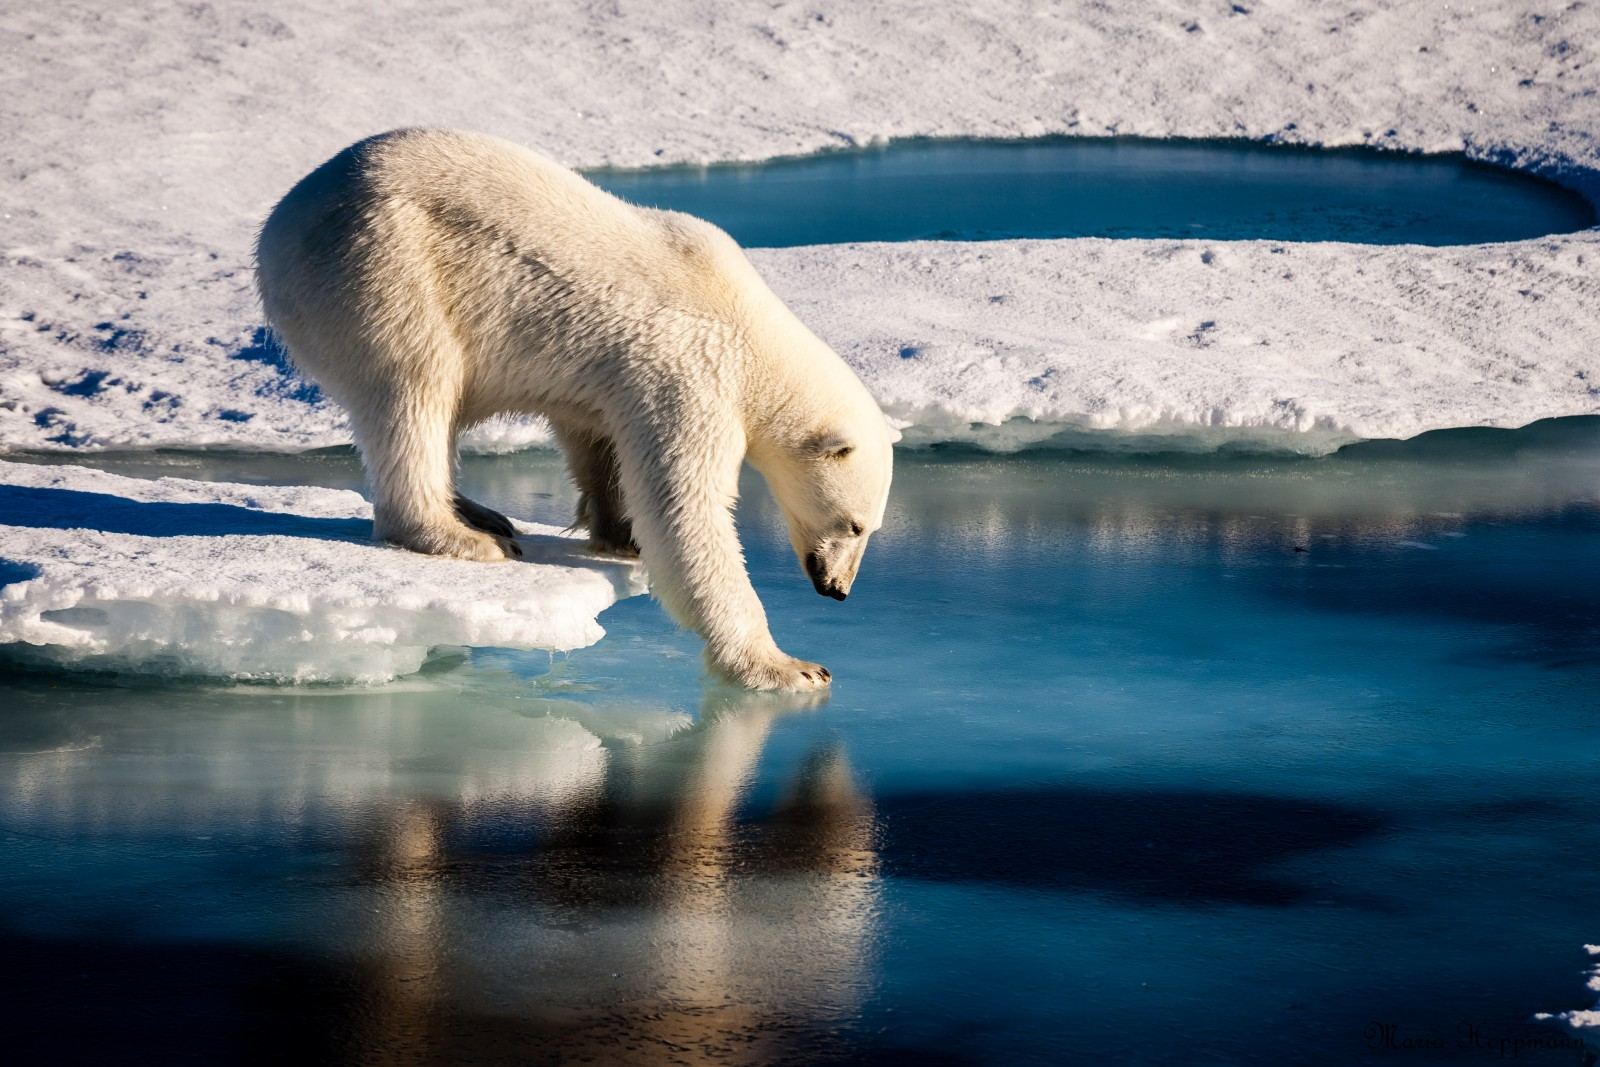 "'Mirror Mirror in the sea...' . Credit: Mario Hoppmann (distributed via imaggeo.egu.eu). A polar bear is testing the strength of thin sea ice. Polar bears and their interaction with the cryosphere are a prime example of how the biosphere is able to adapt to an ""Active Planet"". They are also a prime example of how the anthropogenic influence on Earth's climate system endangers other lifeforms."